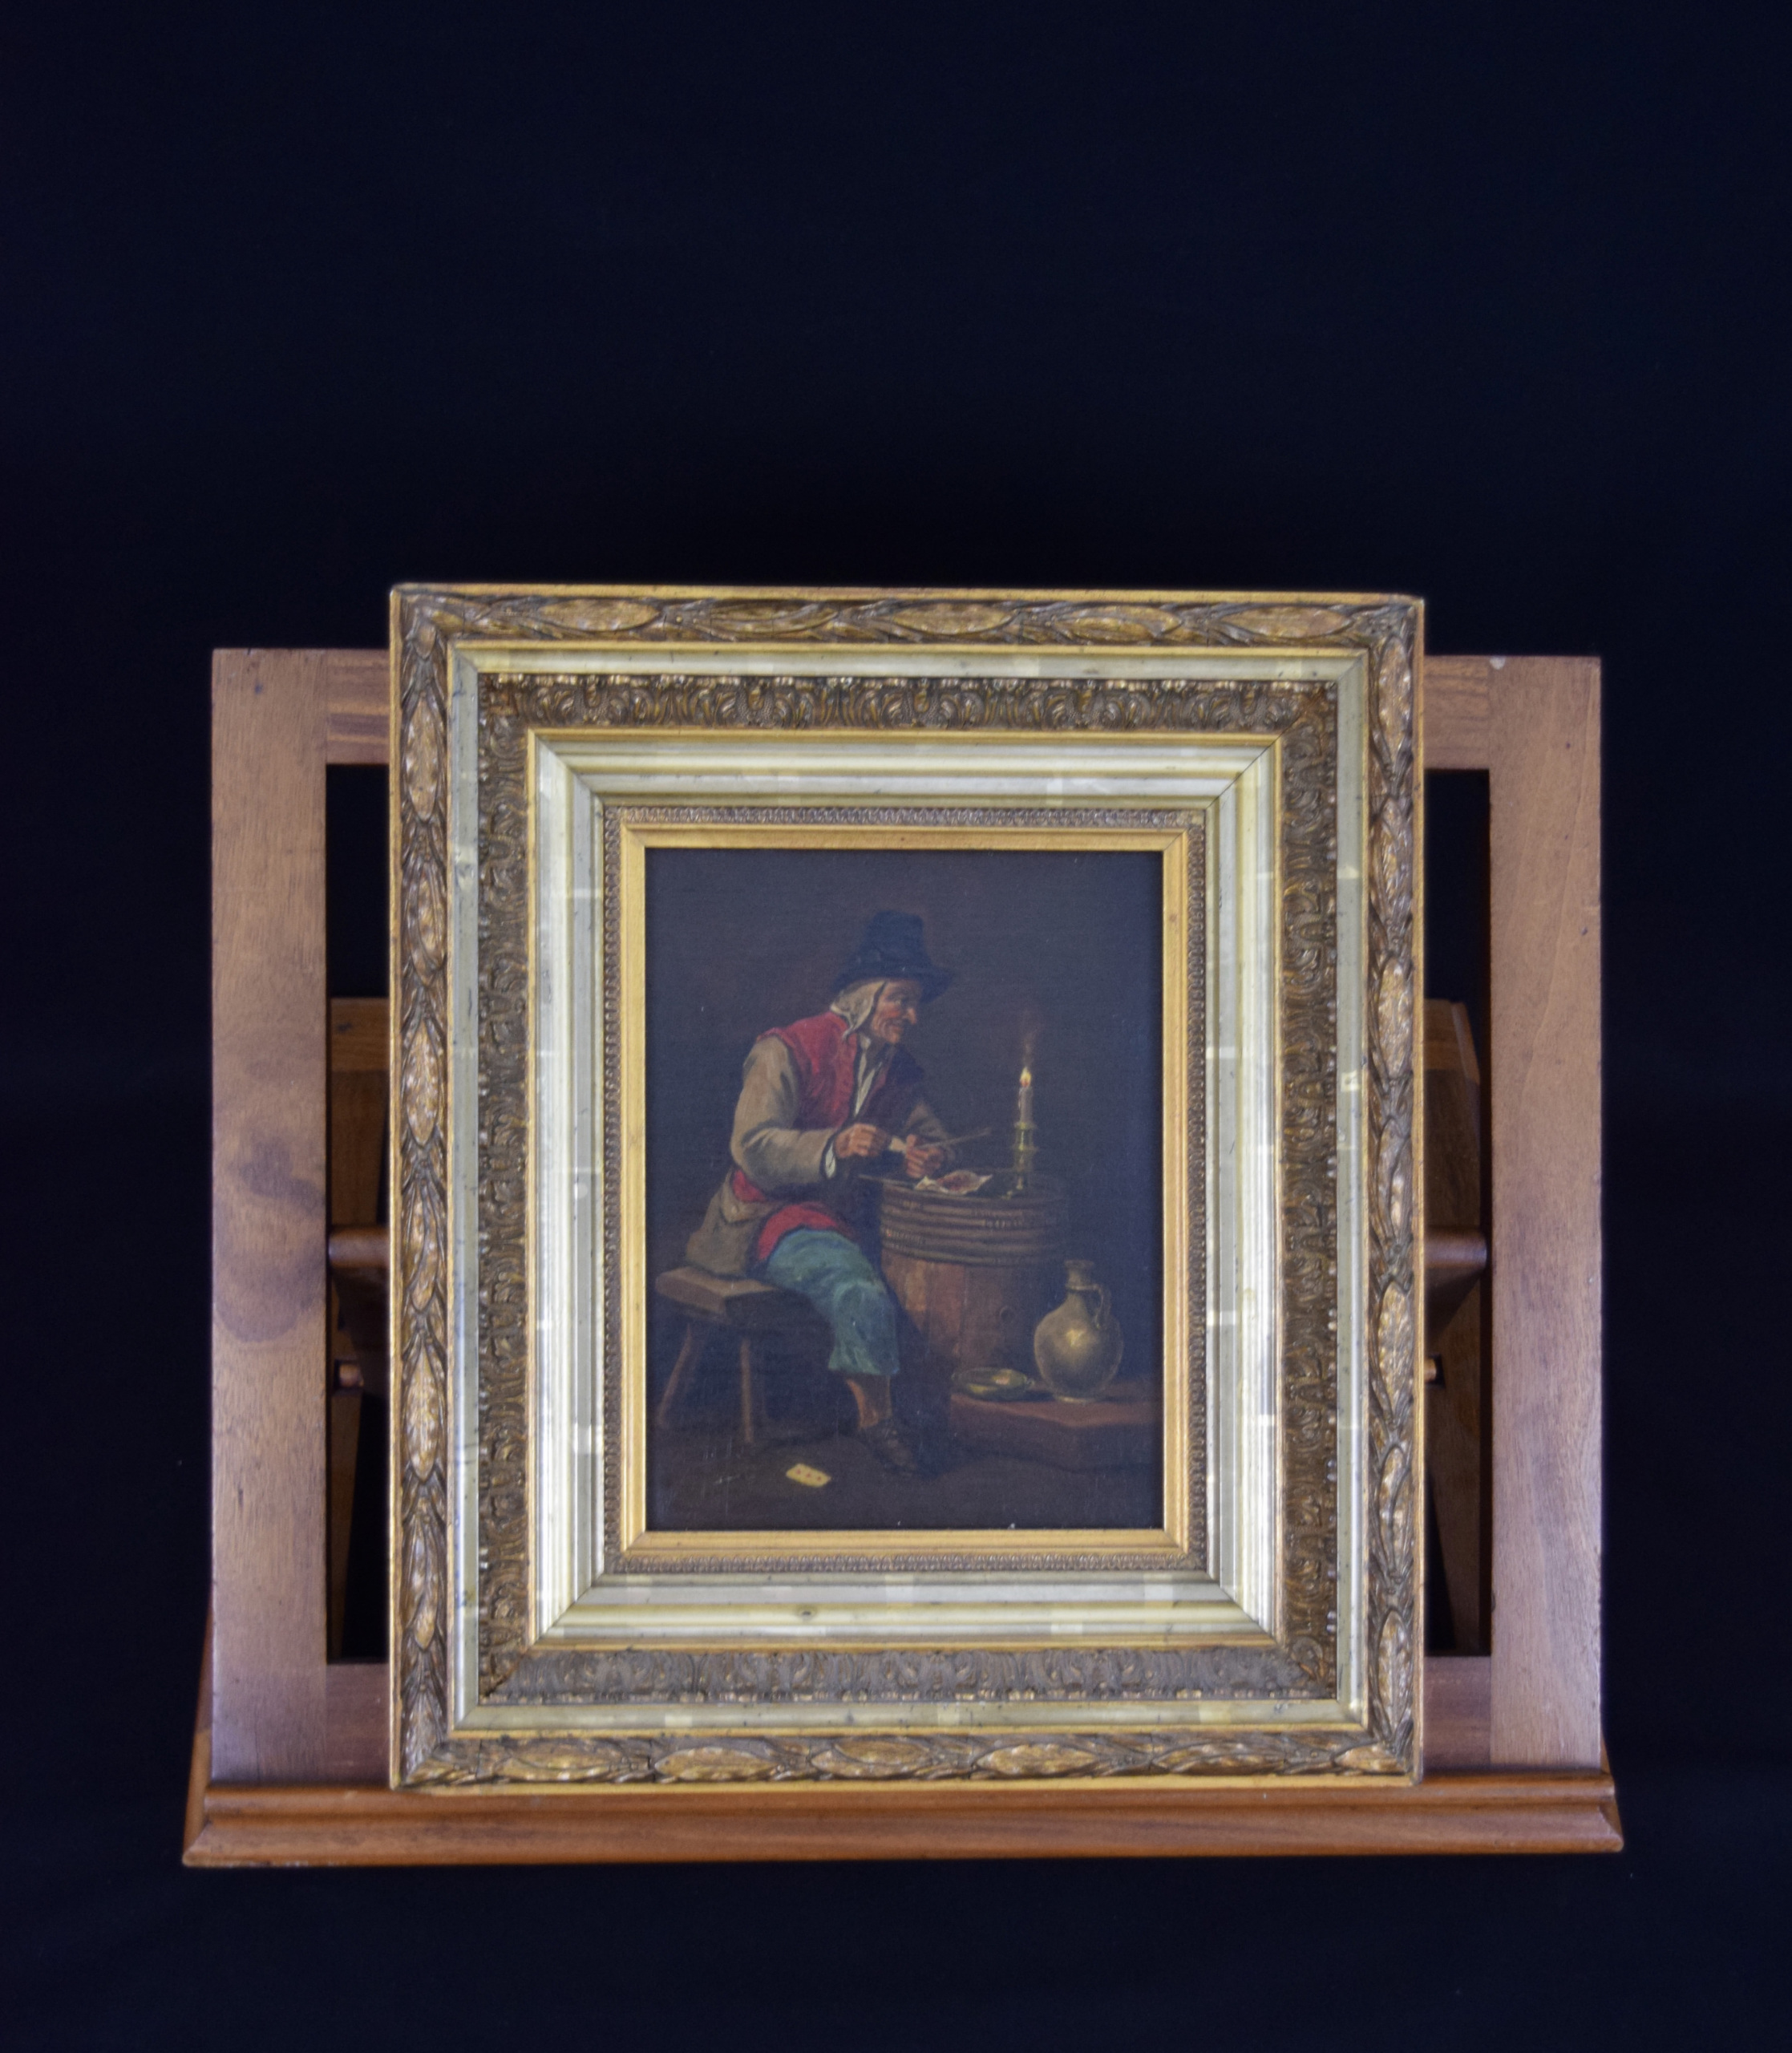 Painting on wooden panel in rich golden frame 19th Century - Man with pipe